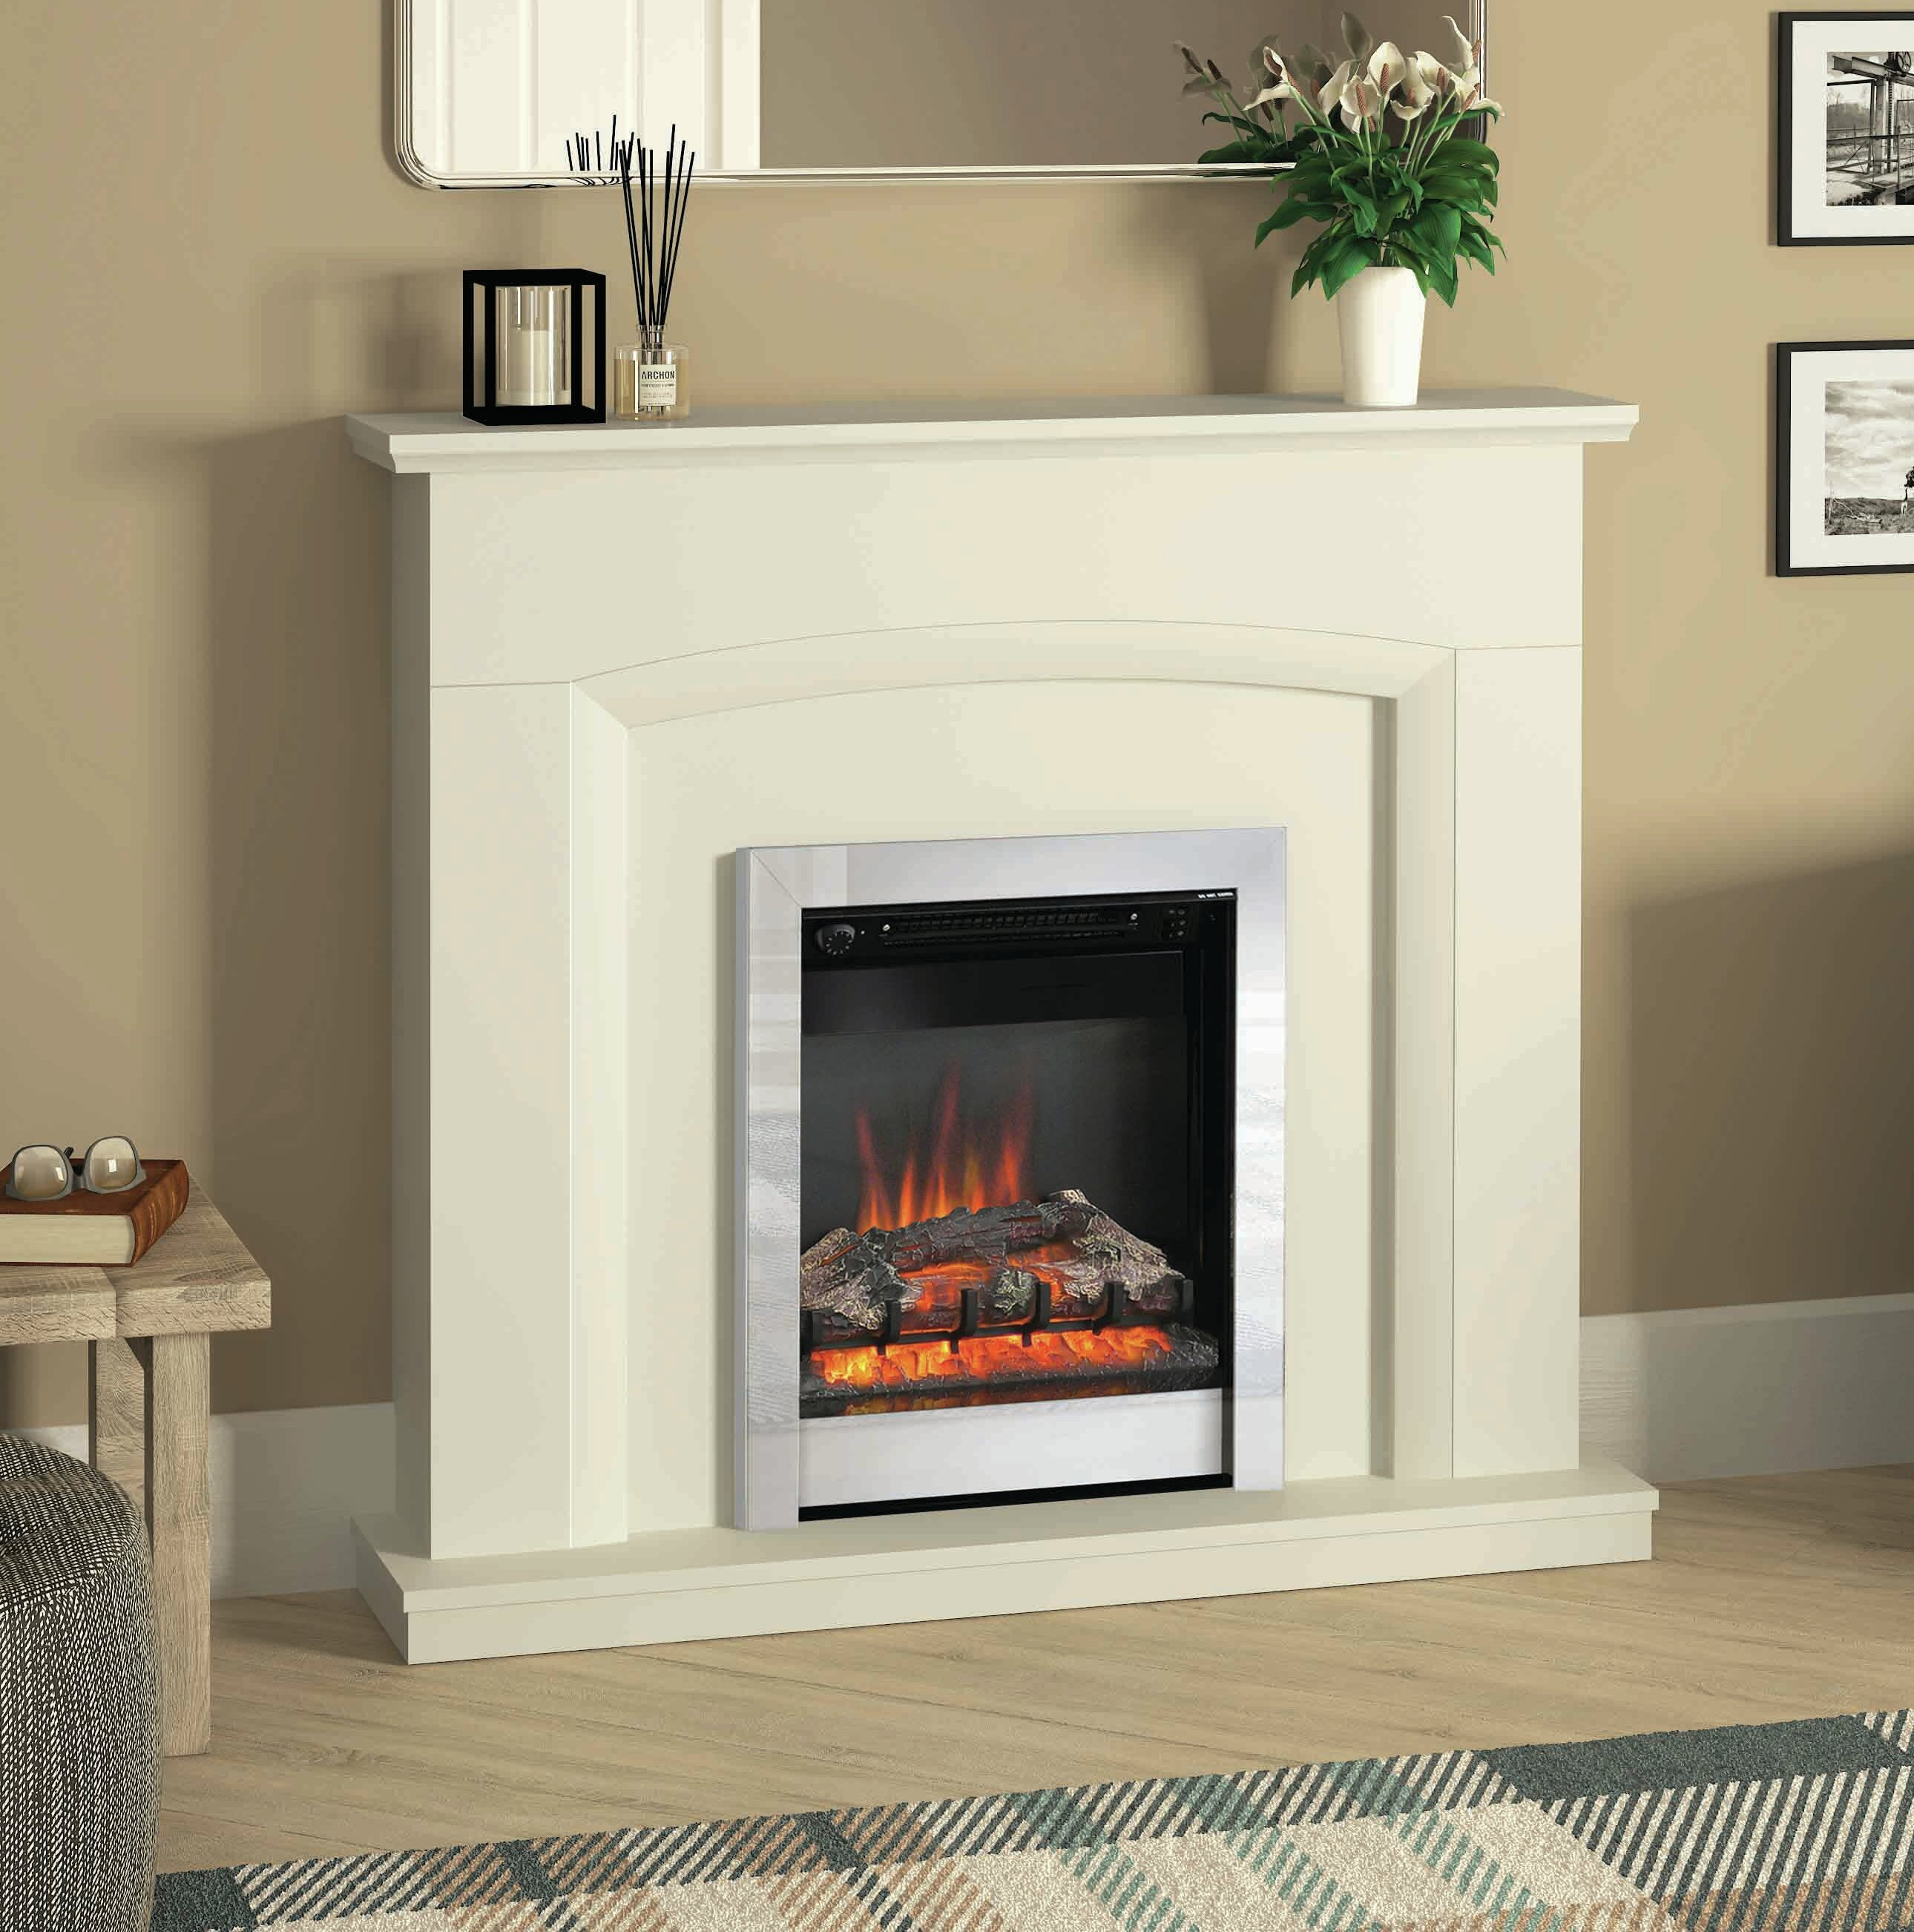 ontario screen large fireplace electric with fires fireplaces hd for hearth corner product bell web